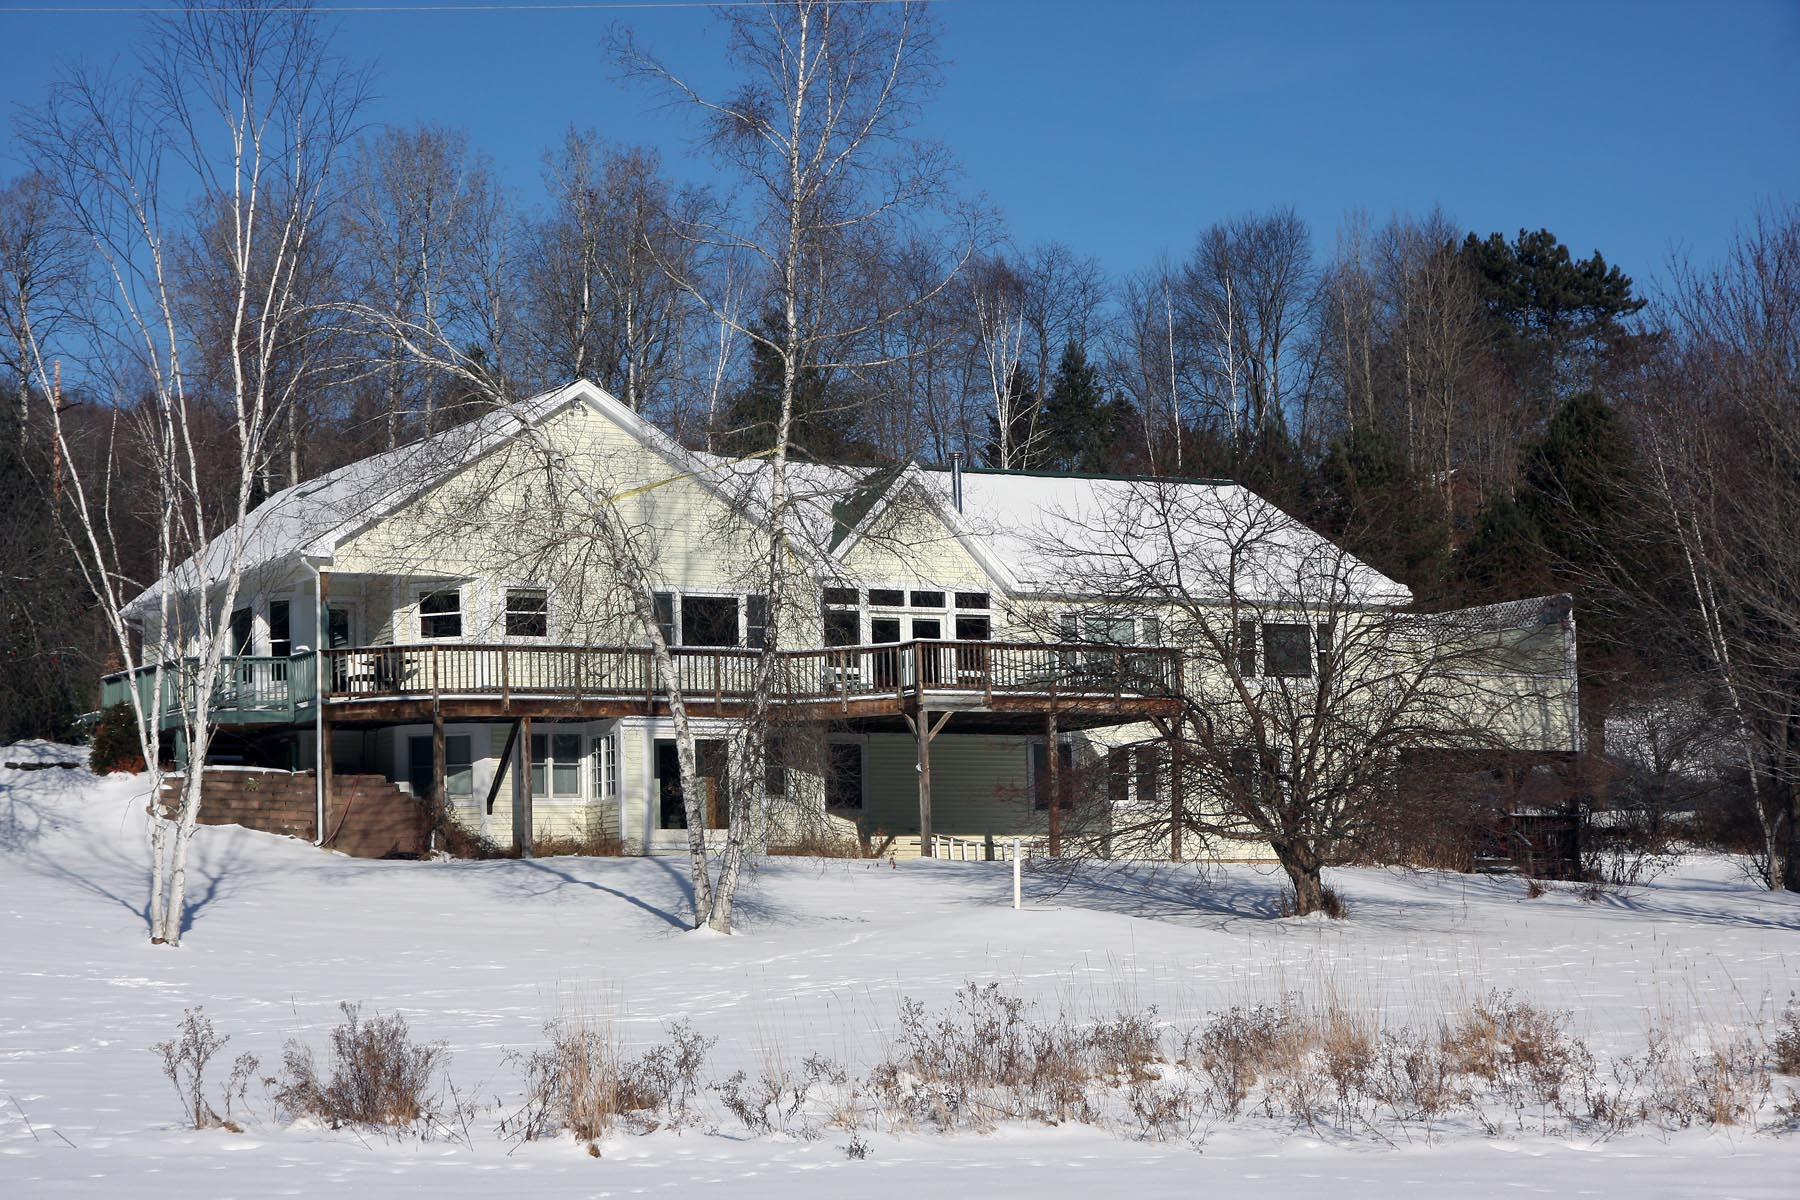 Single Family Home for Sale at 78 Cady Hill, Stowe 78 Cady Hill Rd Stowe, Vermont 05672 United States